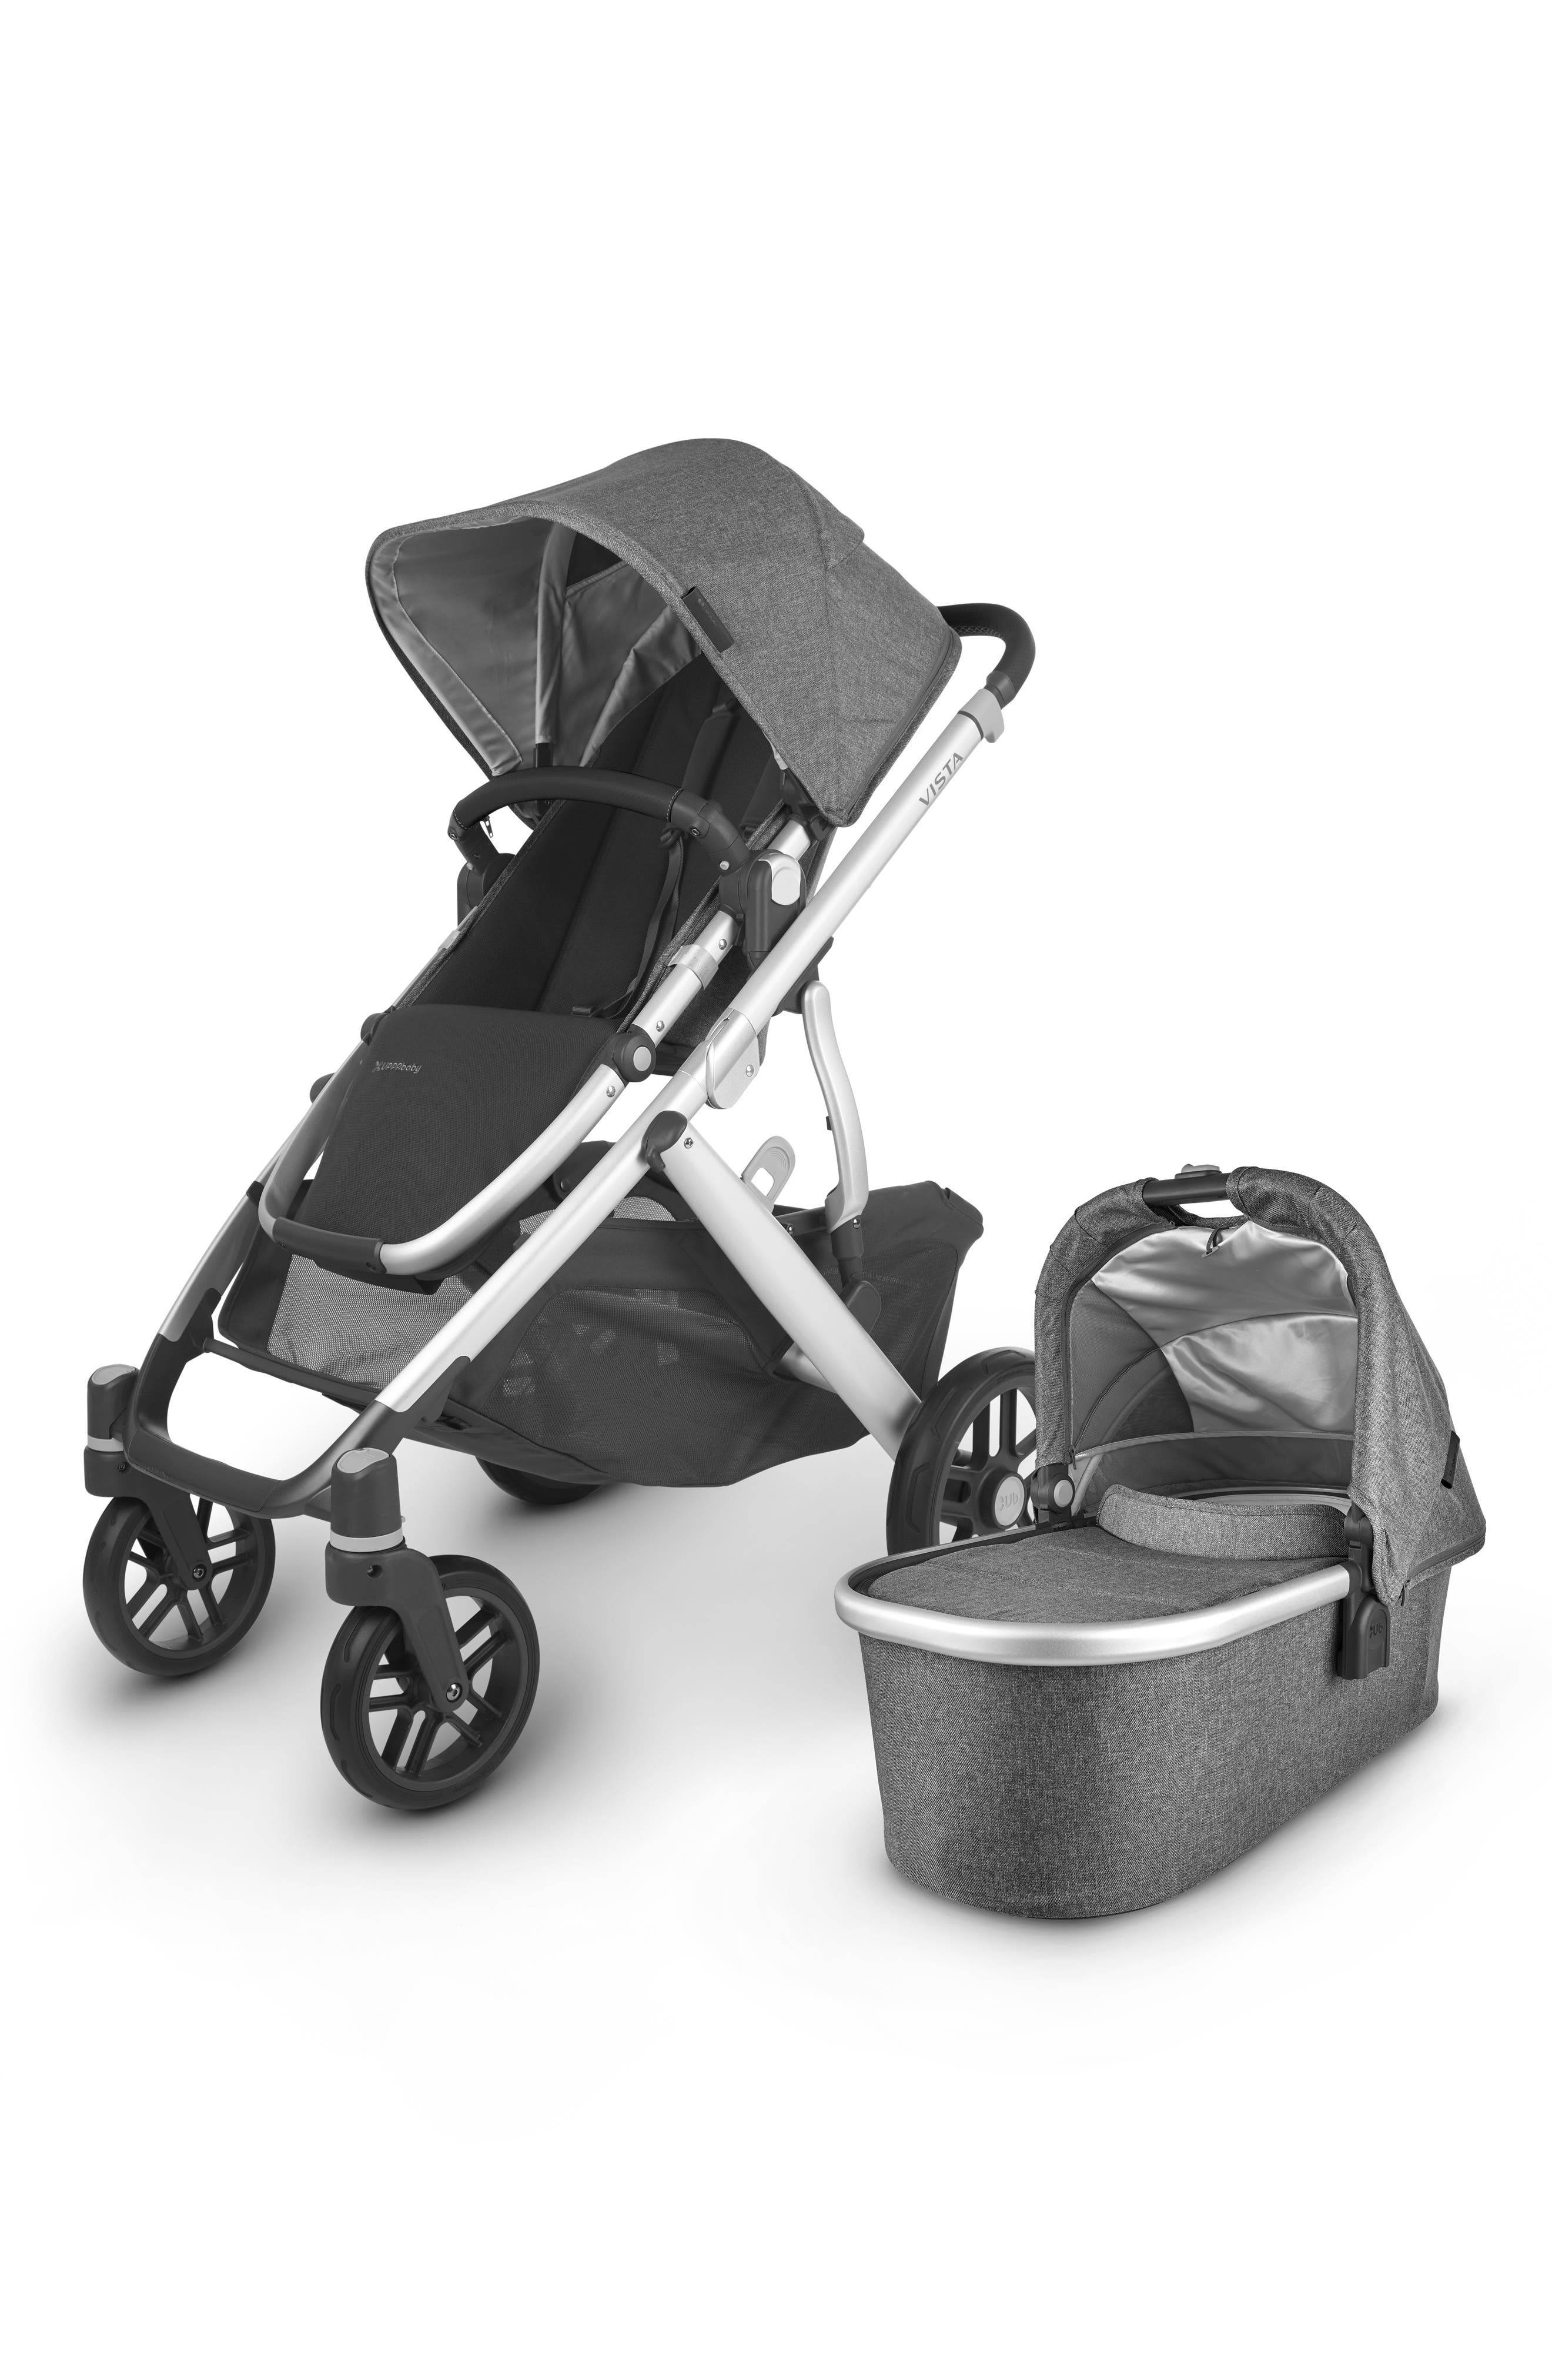 UPPAbaby Infant Uppababy Vista V2 Stroller With Bassinet, Size One Size - Grey